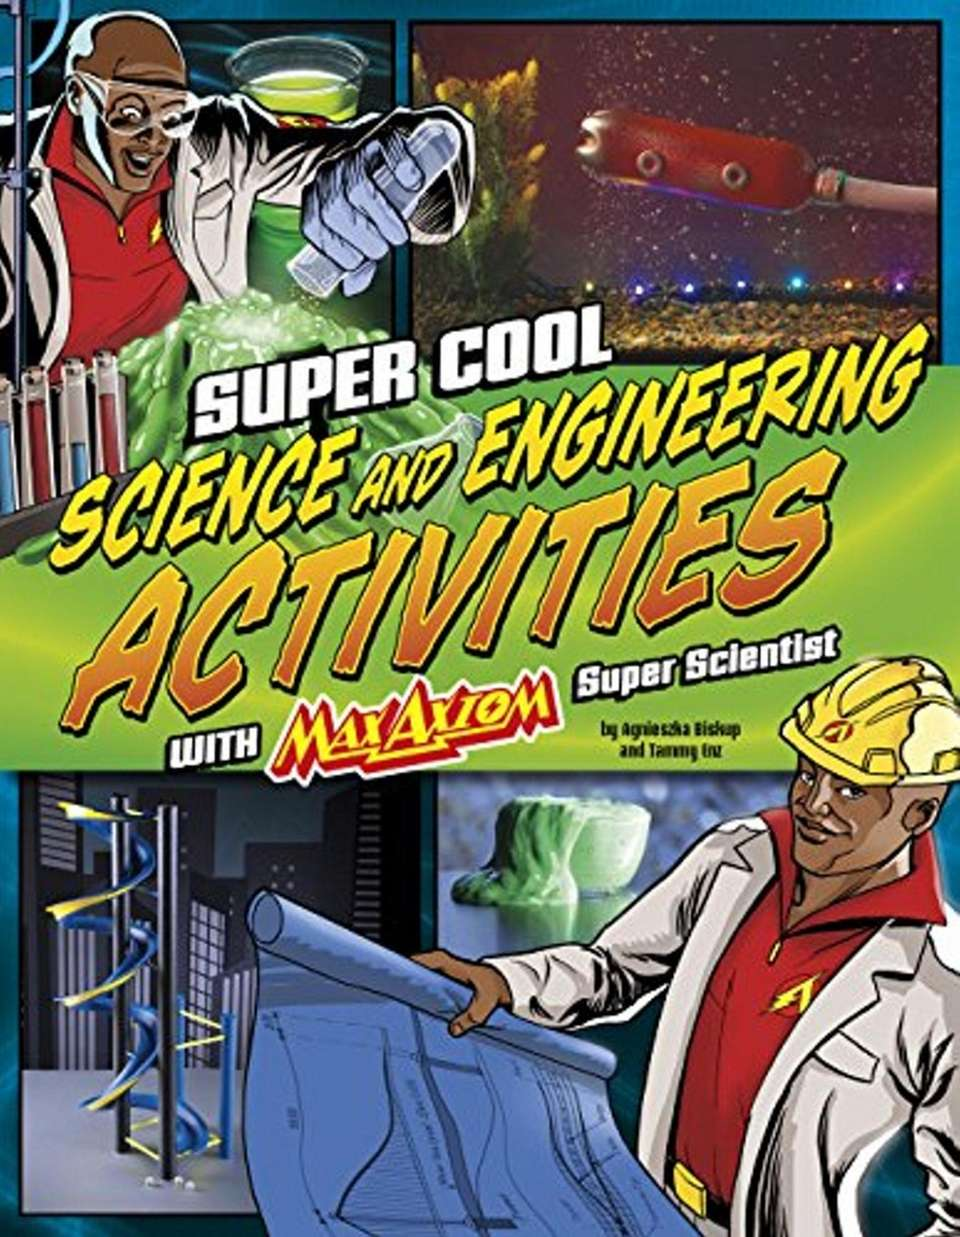 Super Cool Science and Engineering Activities with Max